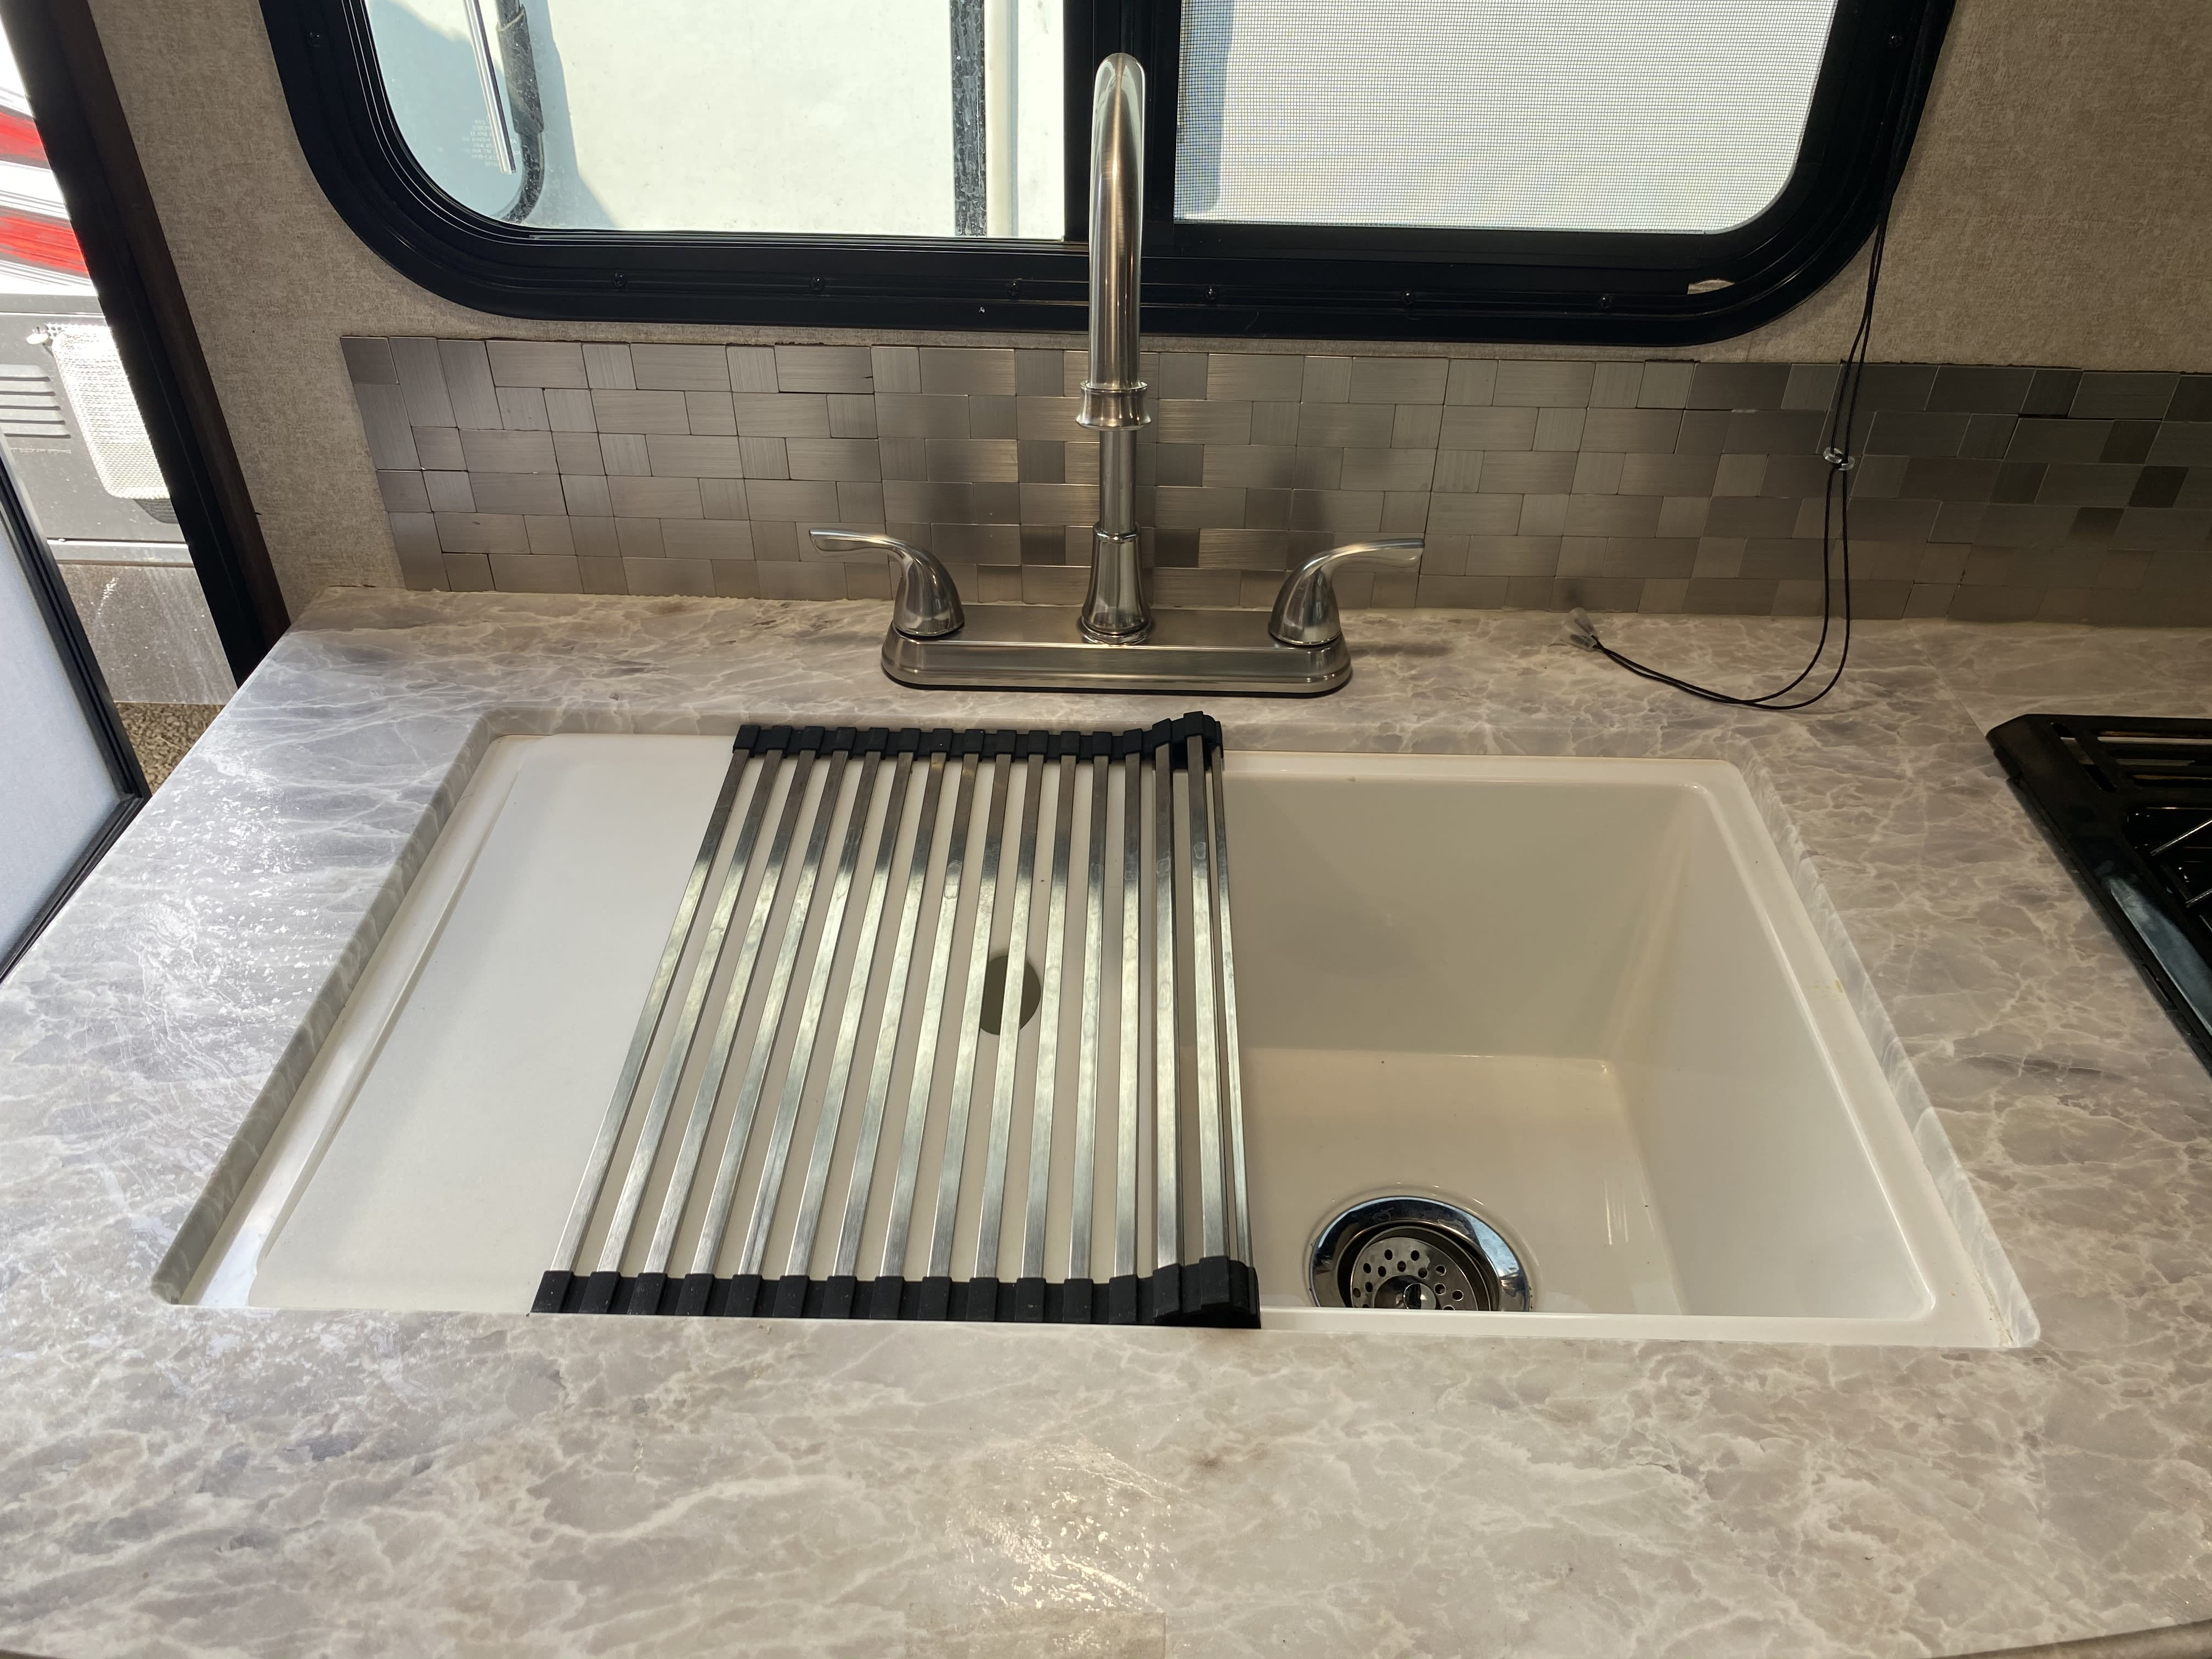 Nice sink with grate. Jayco Jay Feather 2019